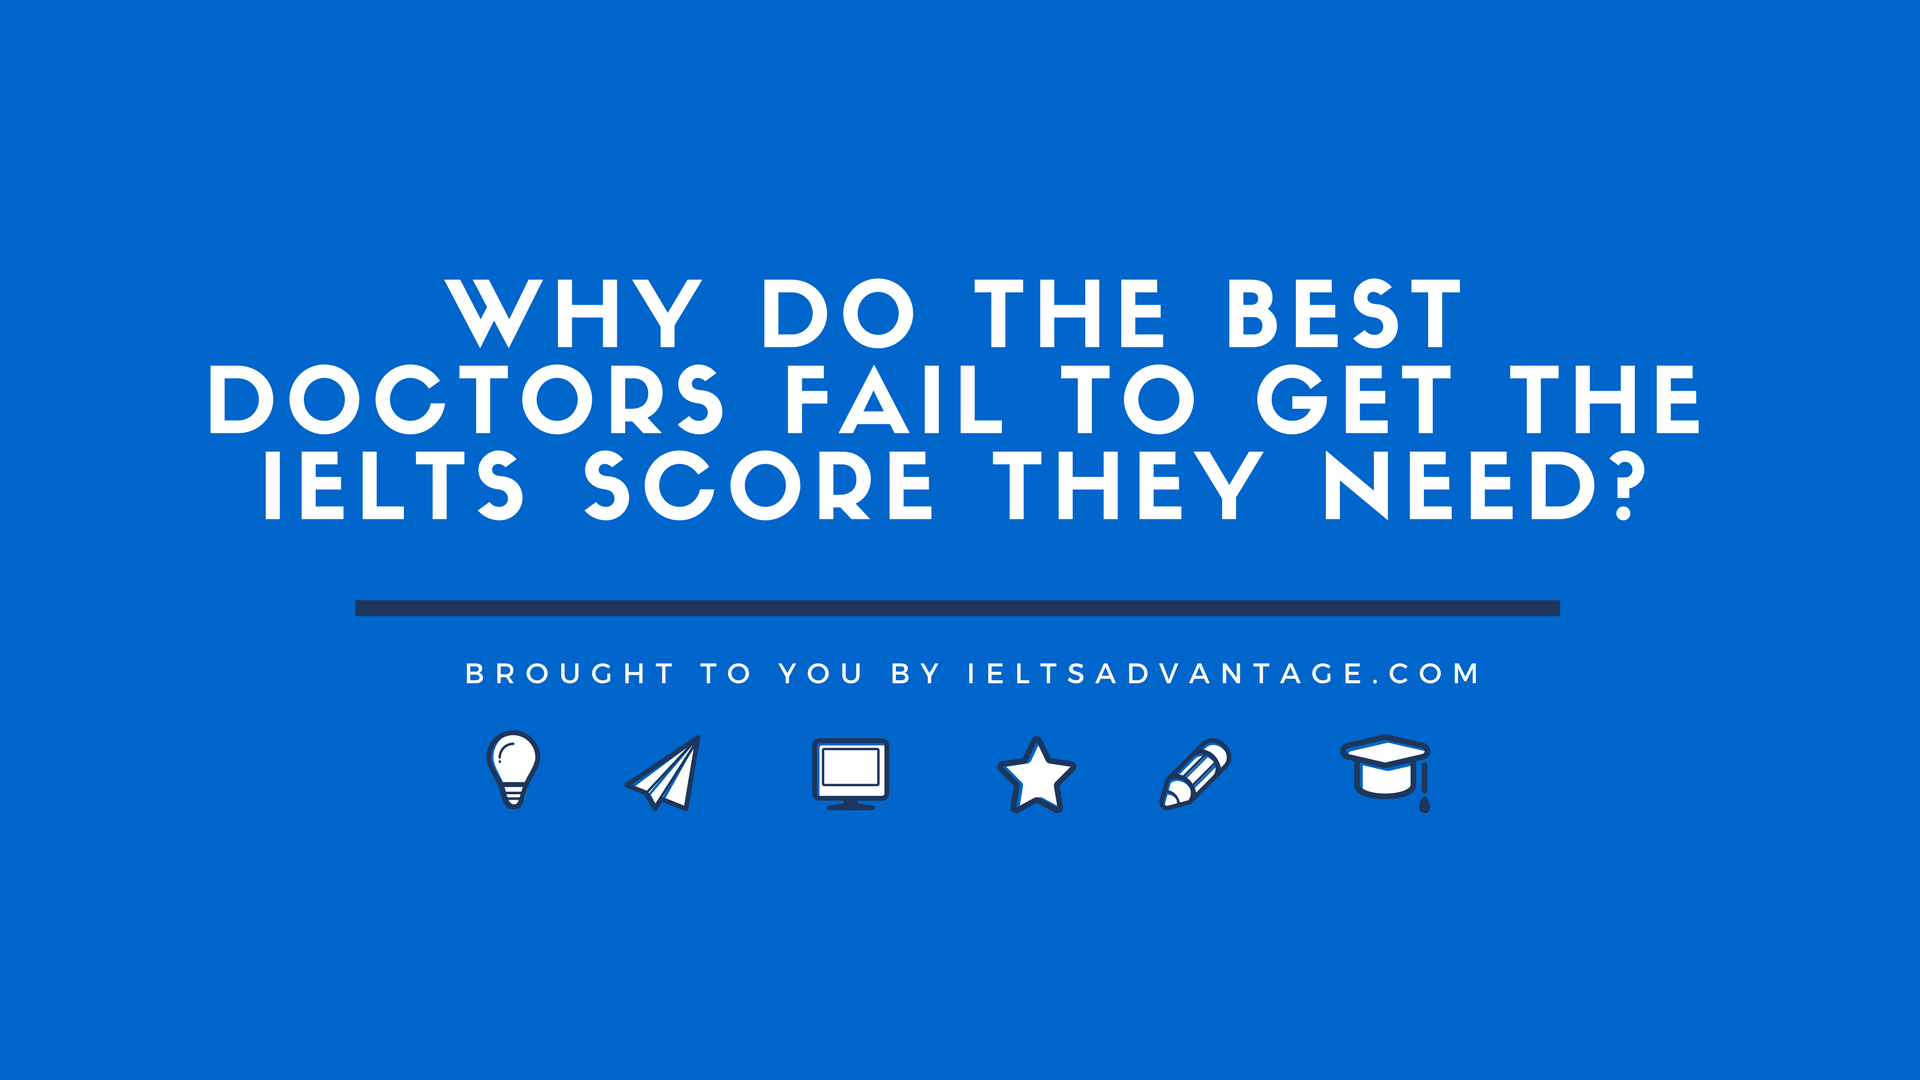 Why do the Best Doctors fail to get the IELTS score they need?